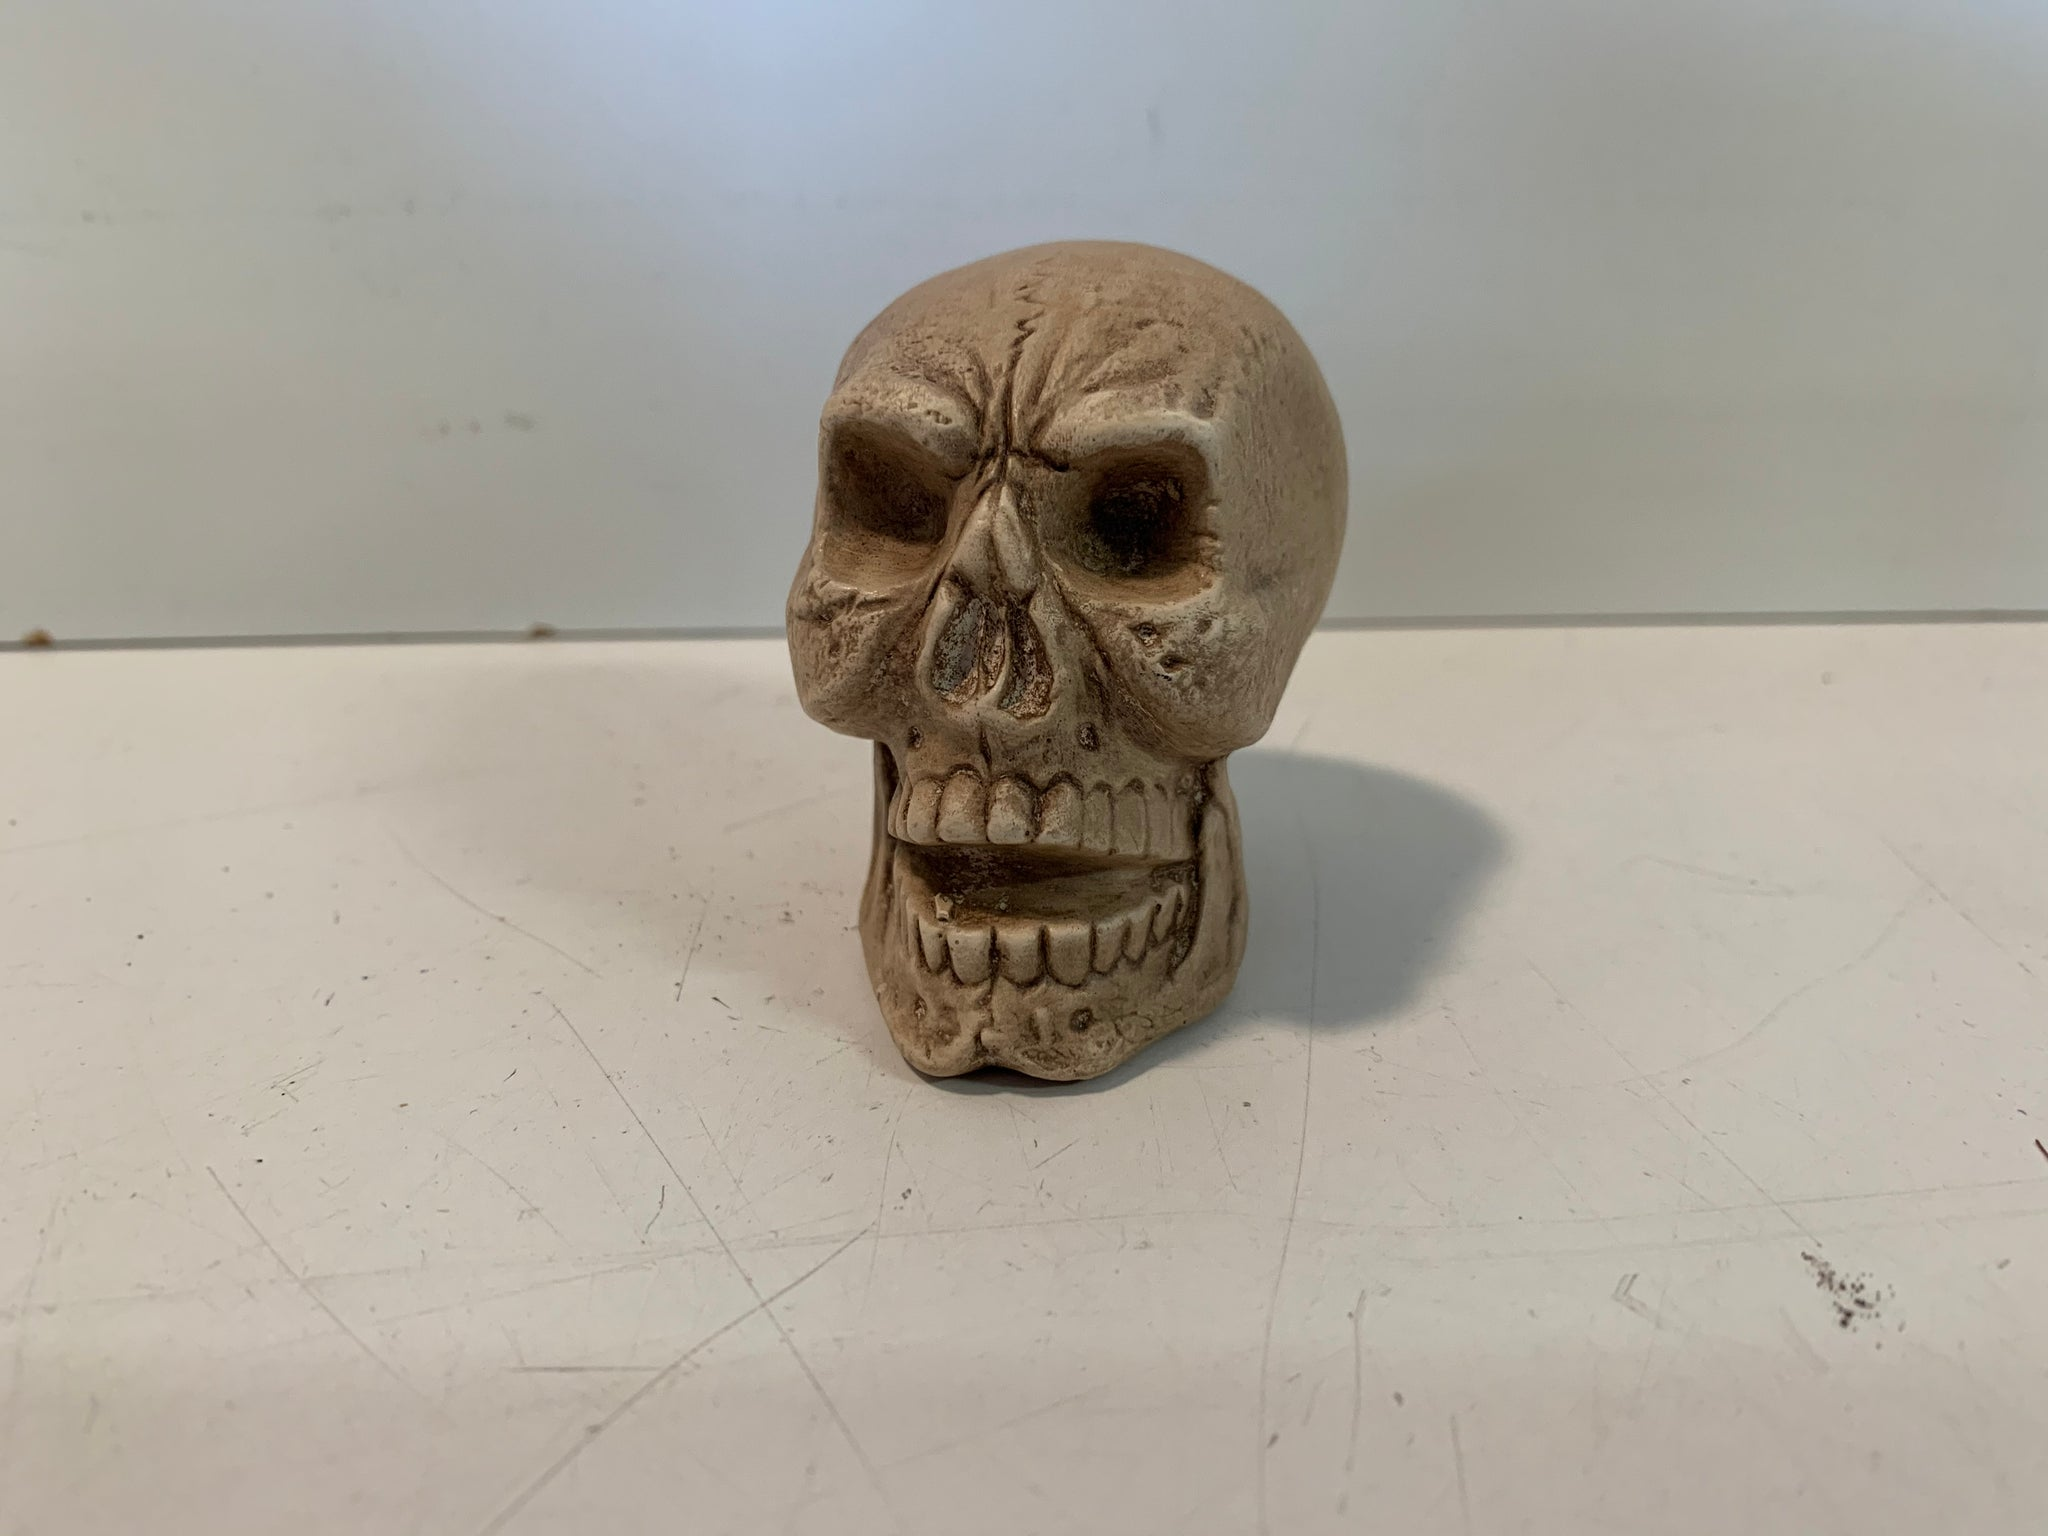 Vintage Homemade Ceramics Skull Figurine Halloween